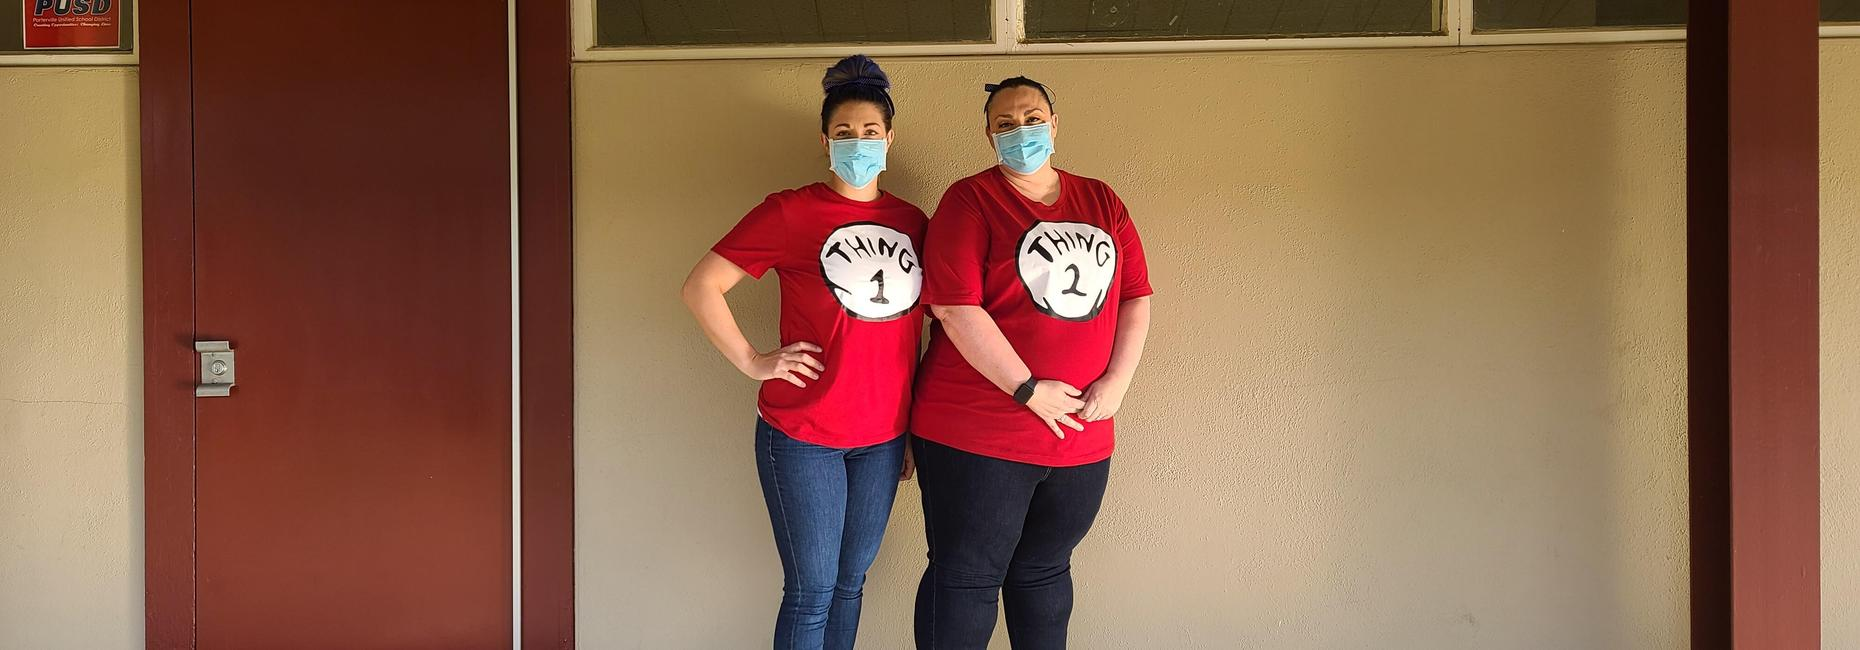 HAPPY BIRTHDAY DR. SEUSS- Thing 1 and Thing 2